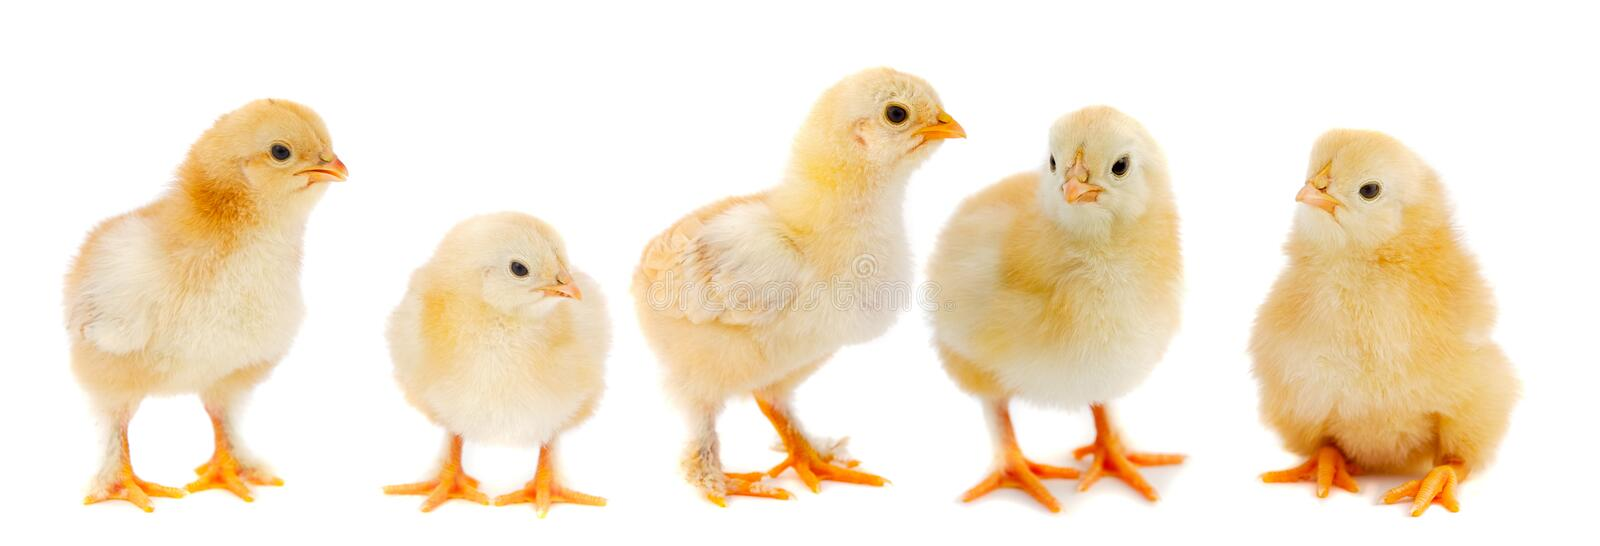 Adorable chicks stock image